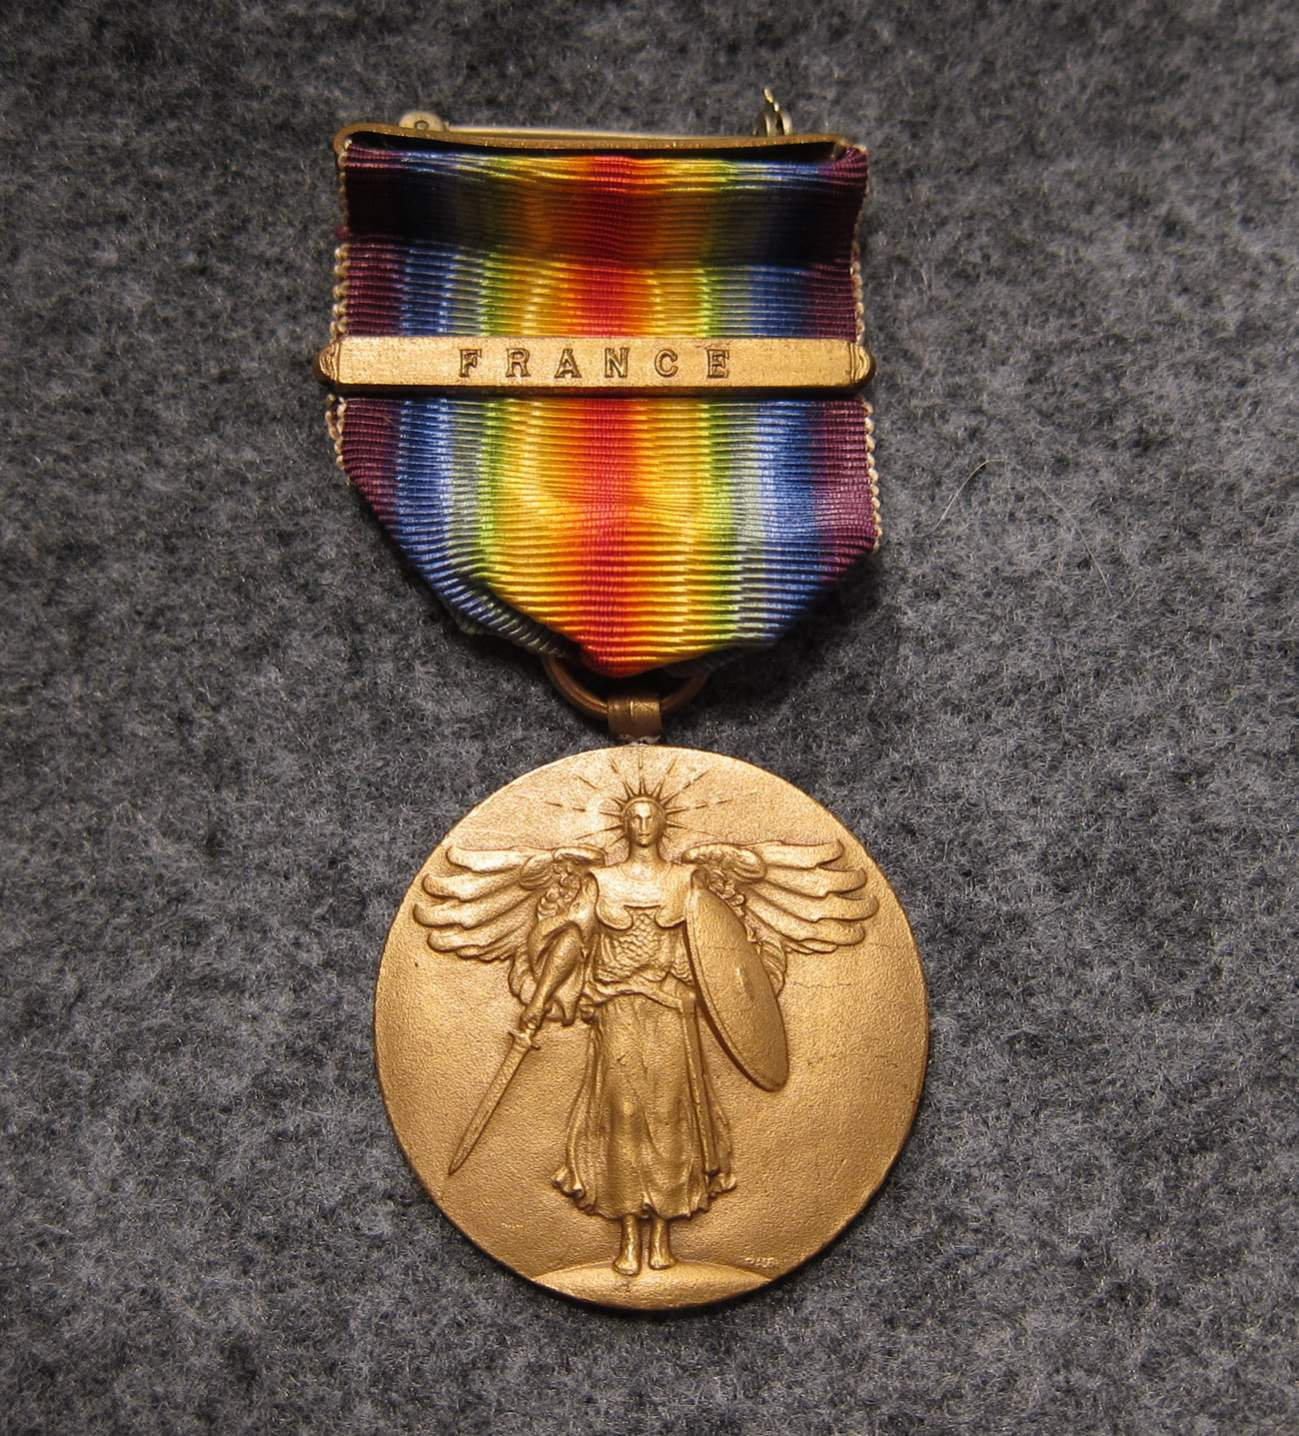 WW1 Victory Medal France Clasp SG Adams Stamp and